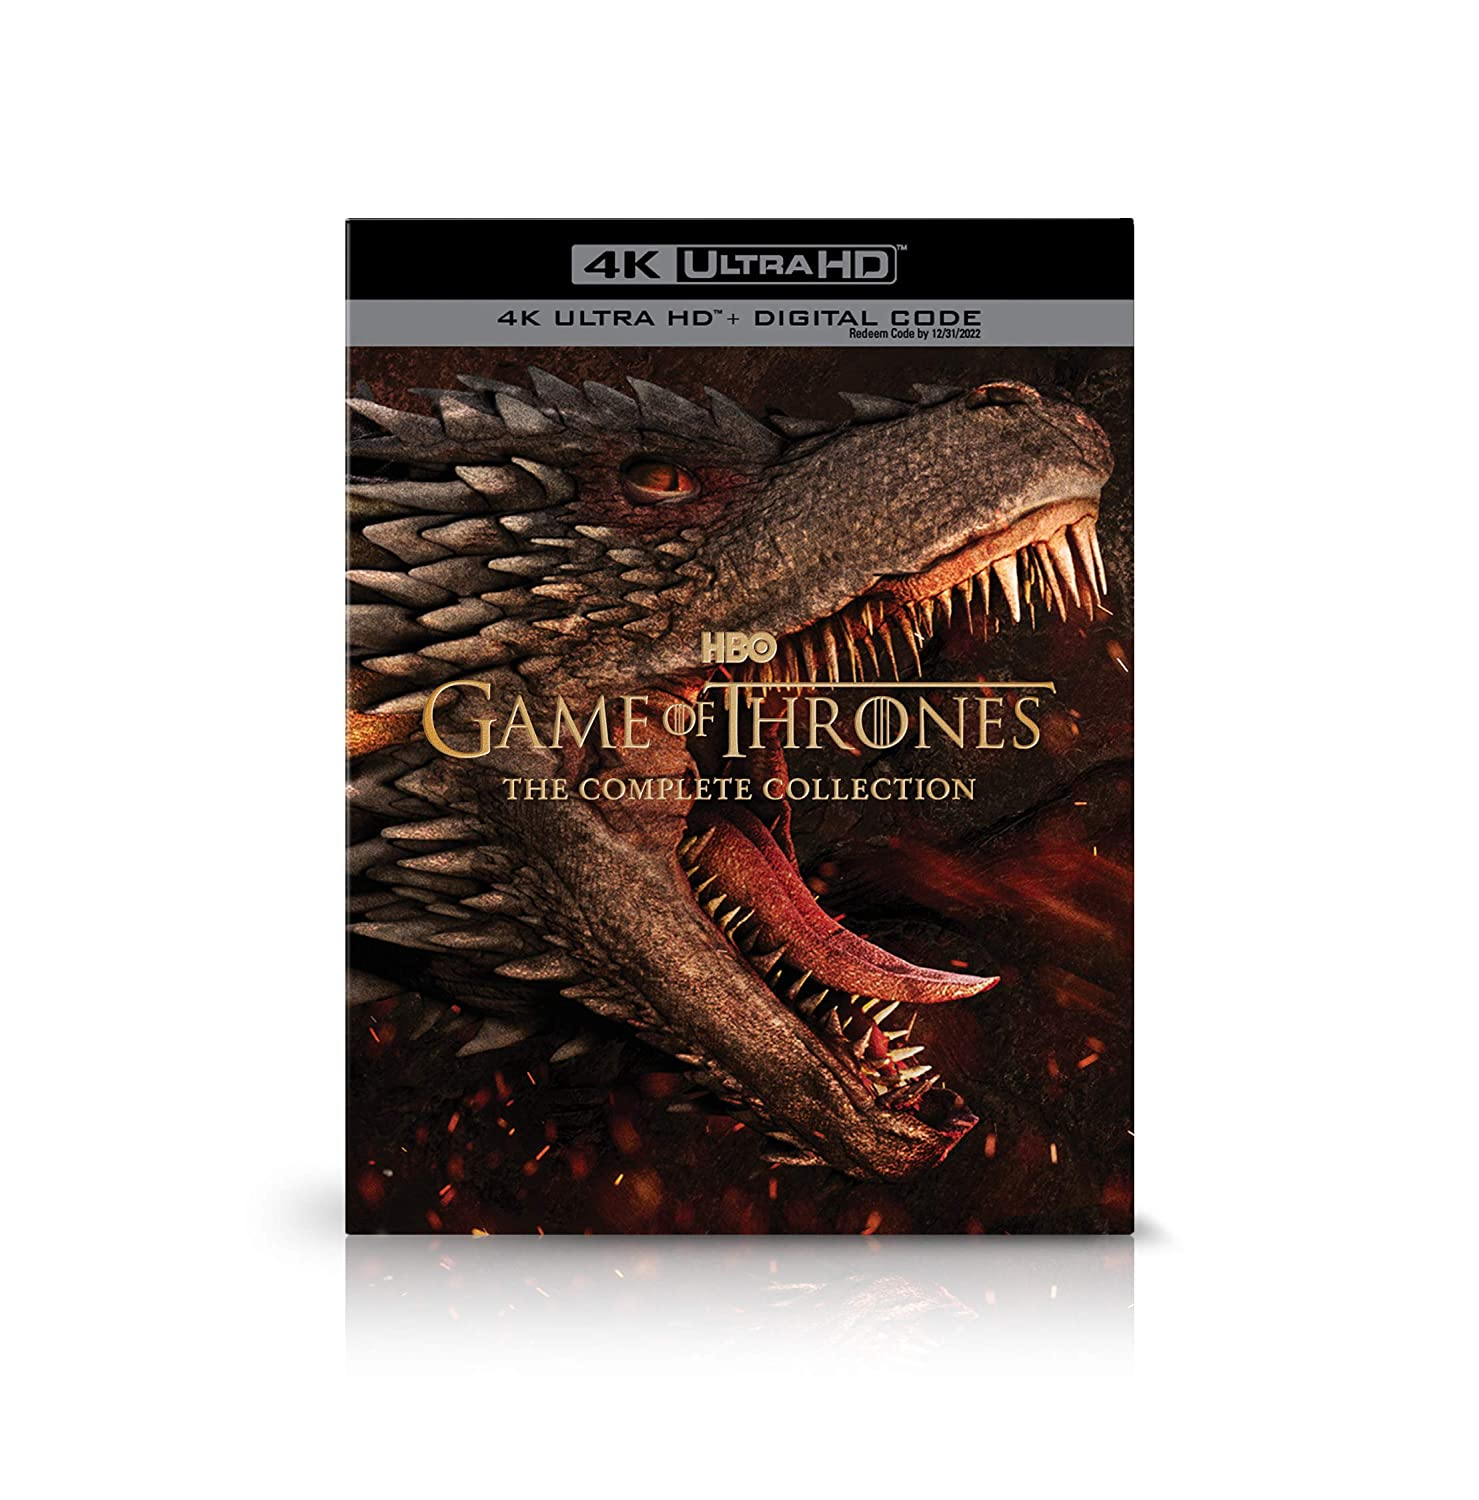 Game Of Thrones Series 4K